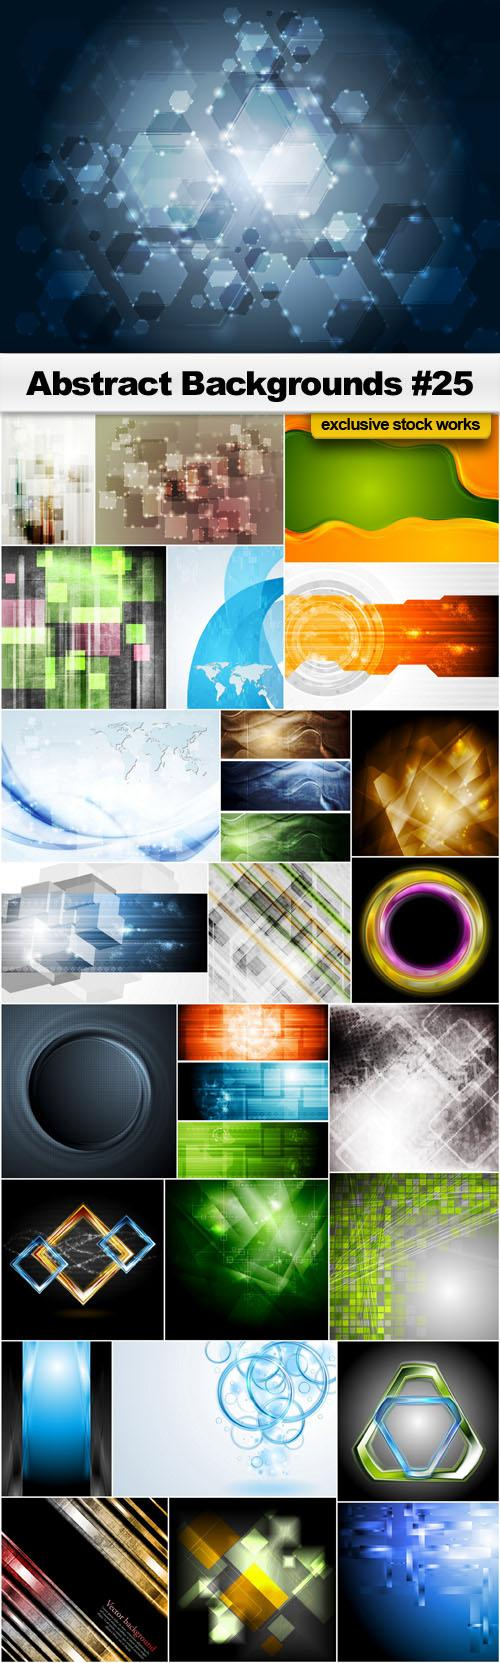 Abstract Backgrounds #25 – 25 EPS